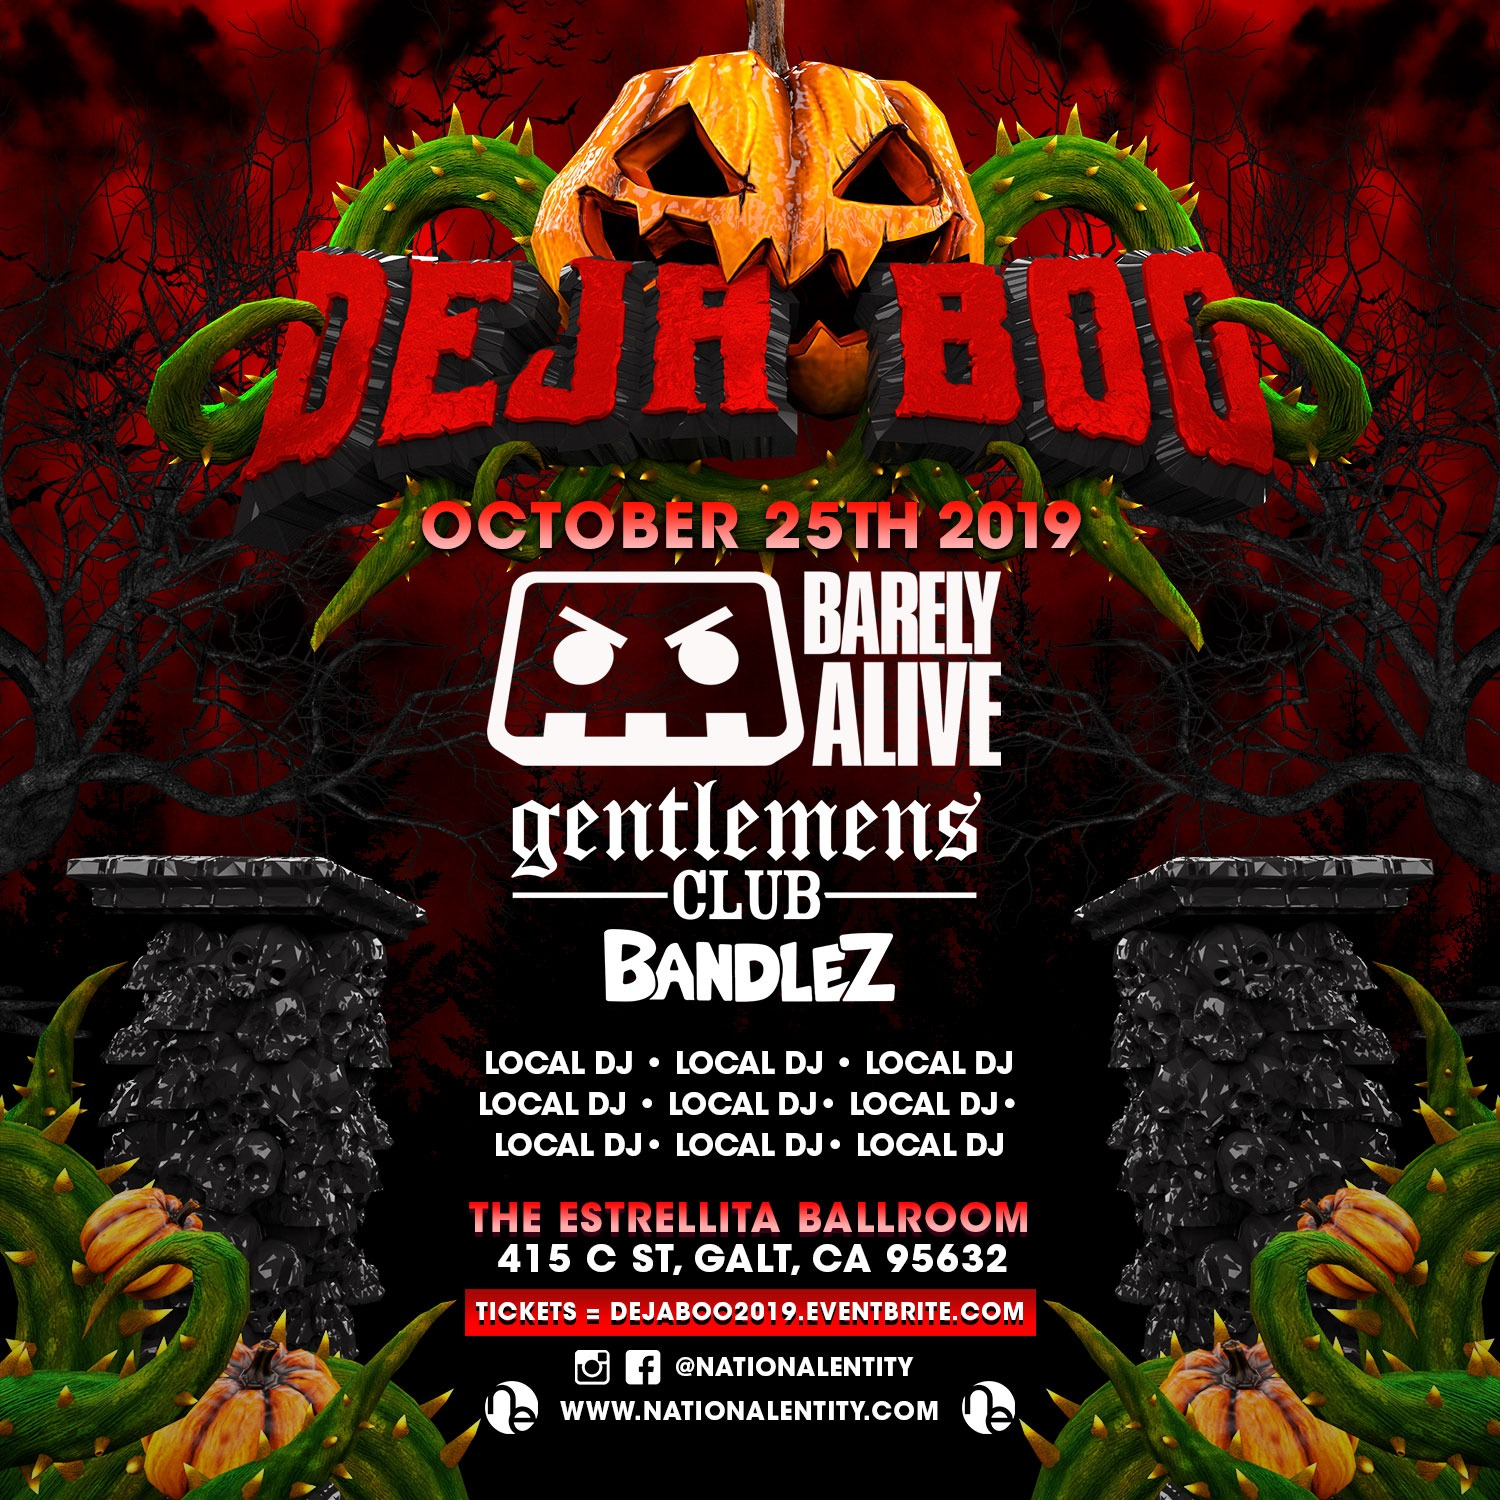 Deja BOO - FB Page - Feat. Barely Alive, Gentlemans Club, Bandlez